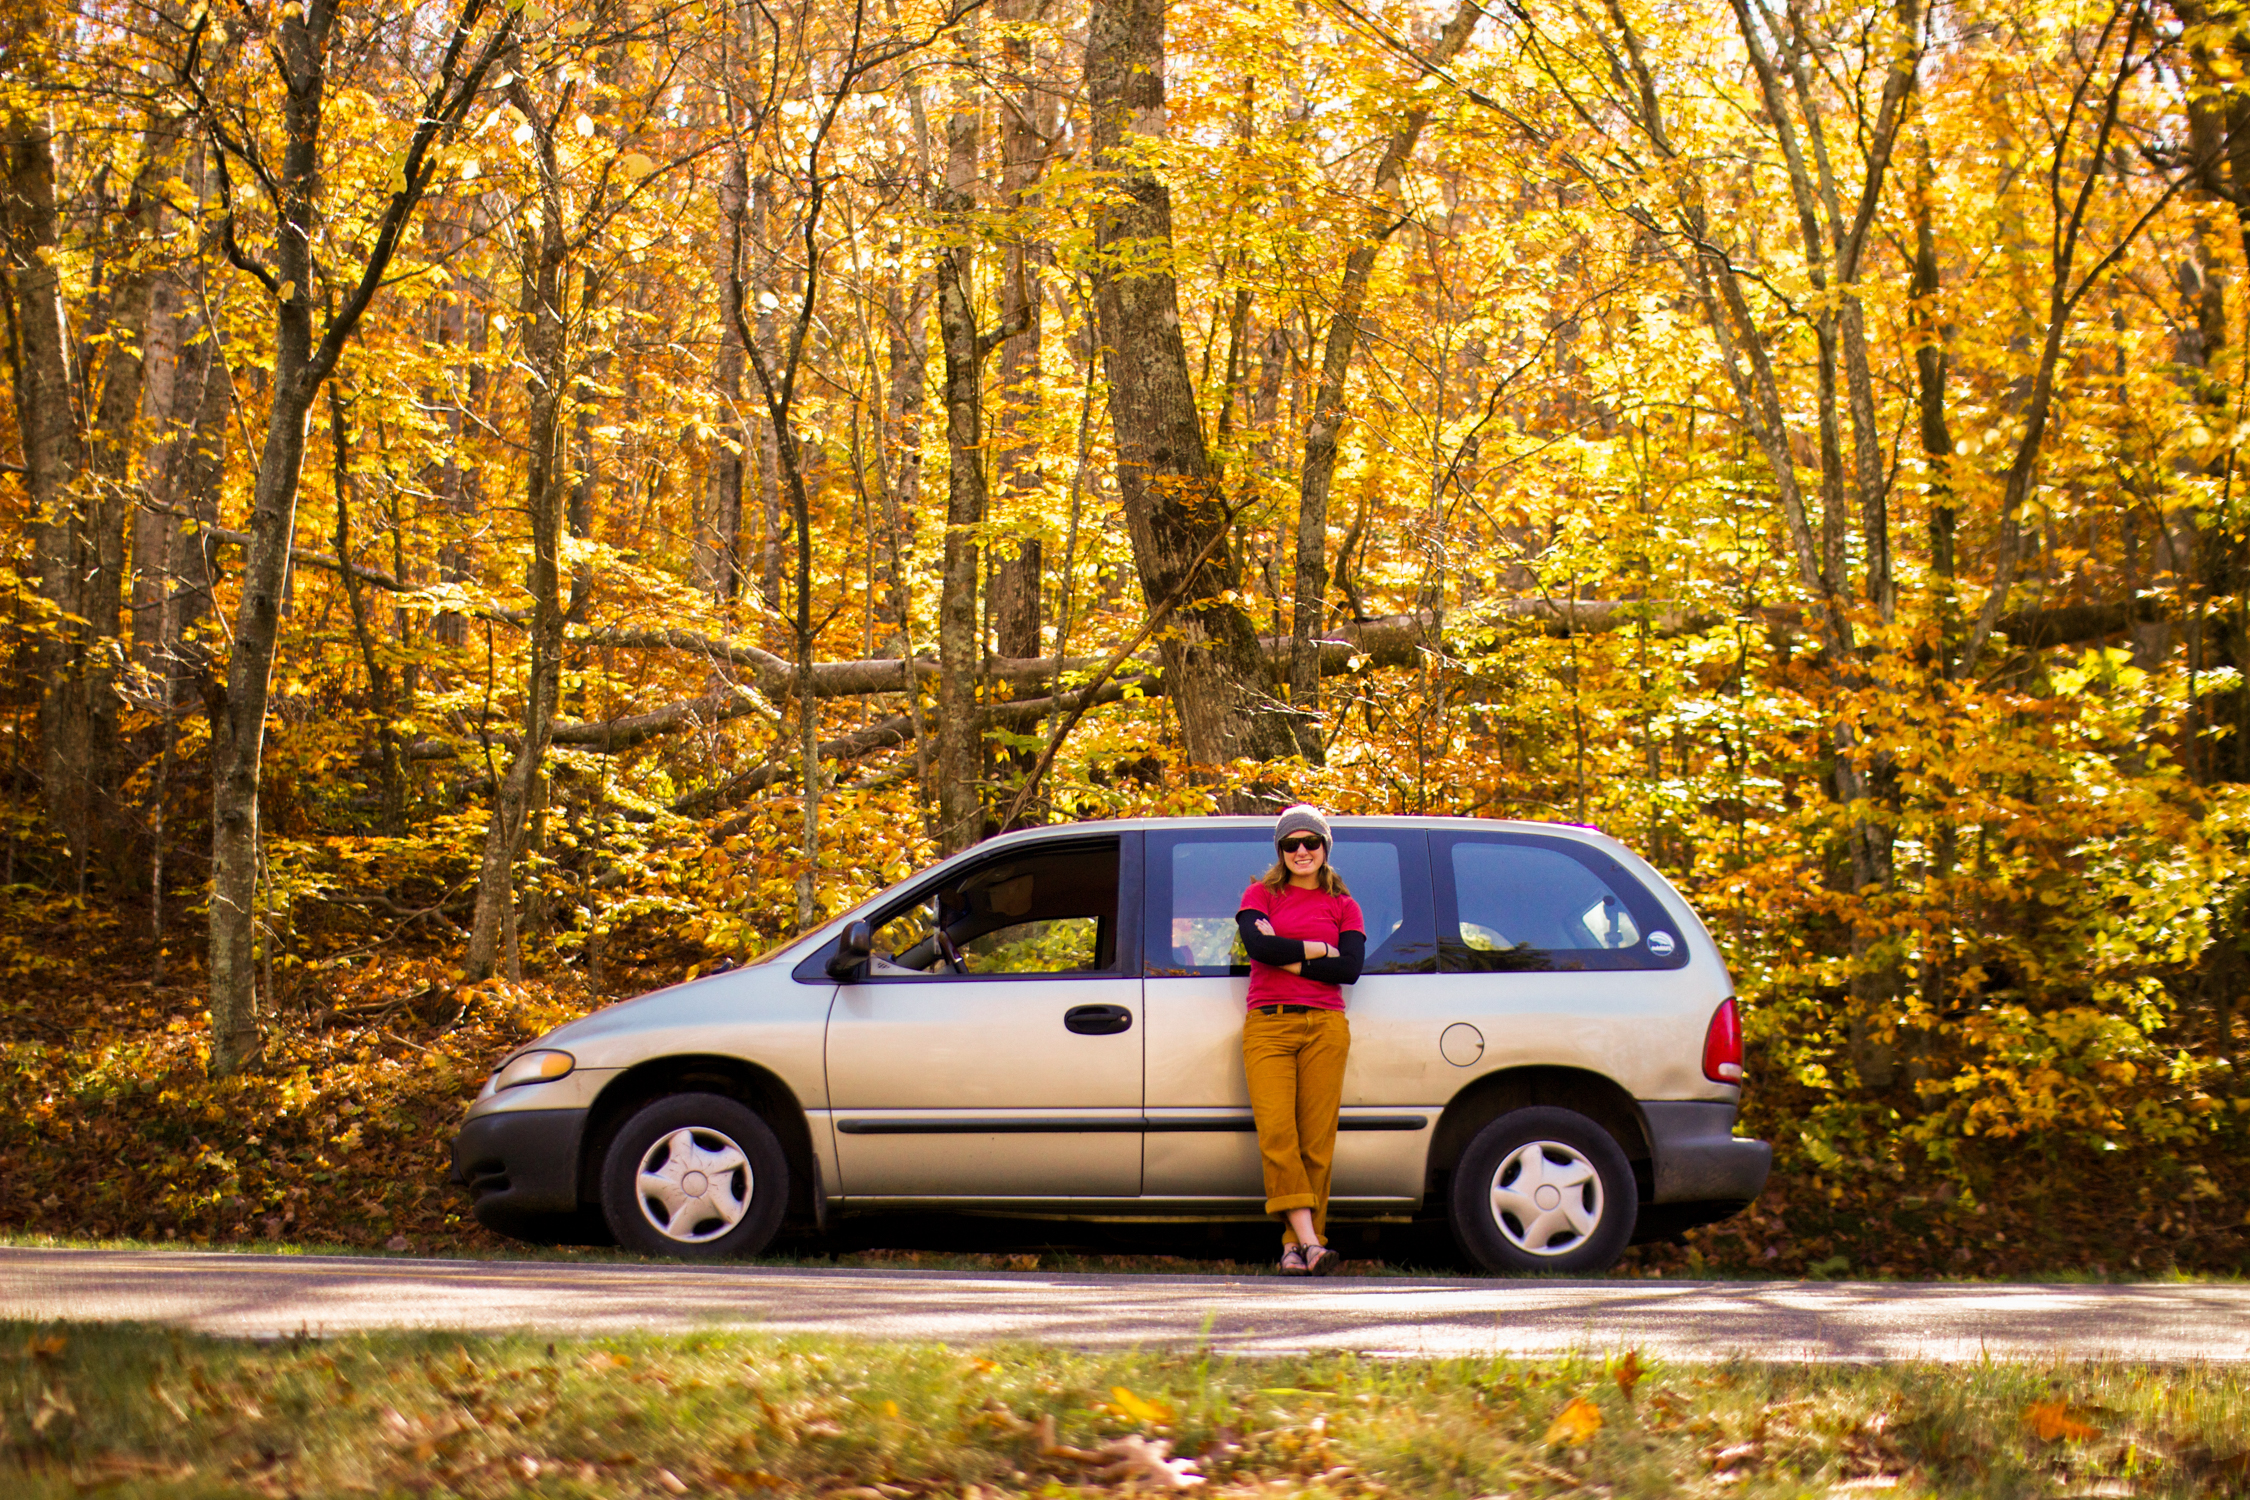 Posing in front of Rosie, aka the minivan-turned-storage-shed, circa fall of 2013.